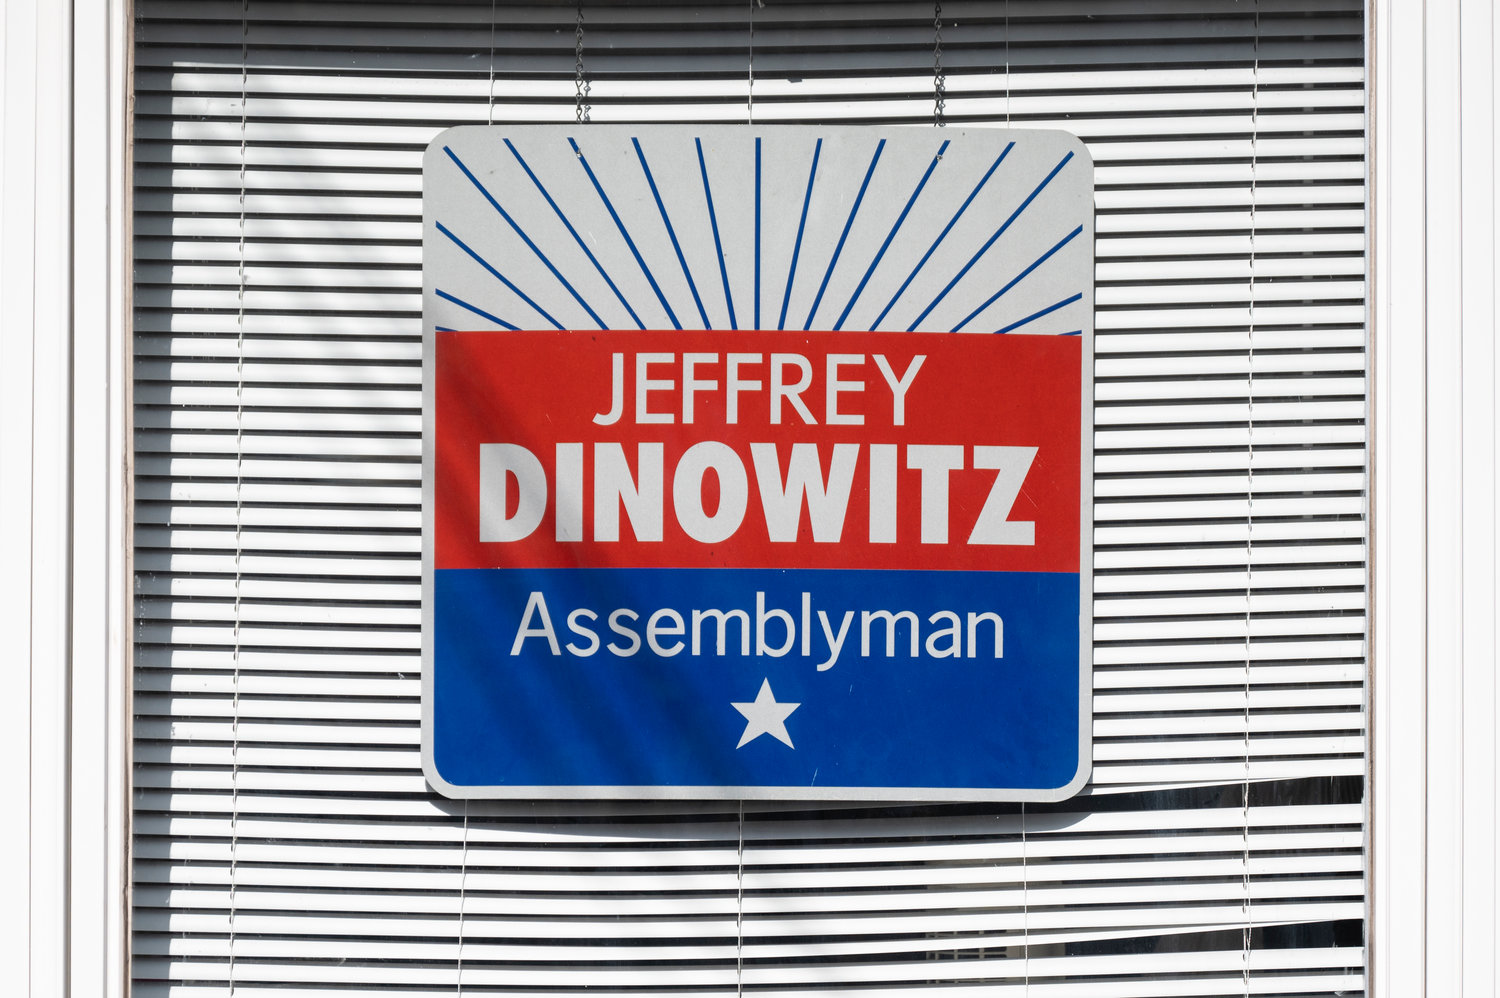 Assemblyman Jeffrey Dinowitz says the idea that party machines like the Bronx Democrats he helps lead benefit from special elections is absurd. However, Manhattan College political science professor Margaret Groarke says special election are a common tactic used by party machines to more easily land their preferred candidate in office.